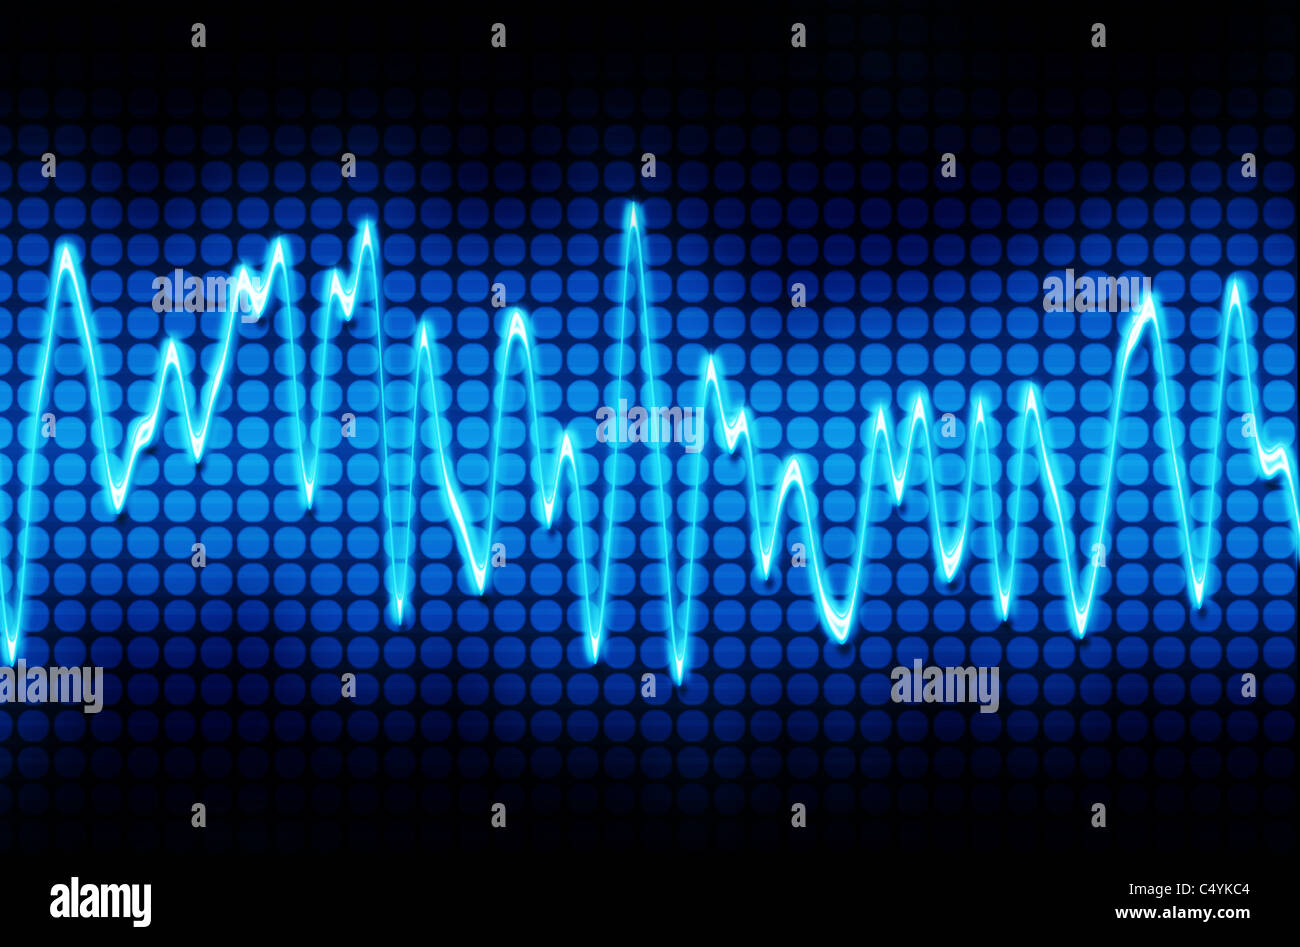 blue electronic sine sound or audio wave - Stock Image